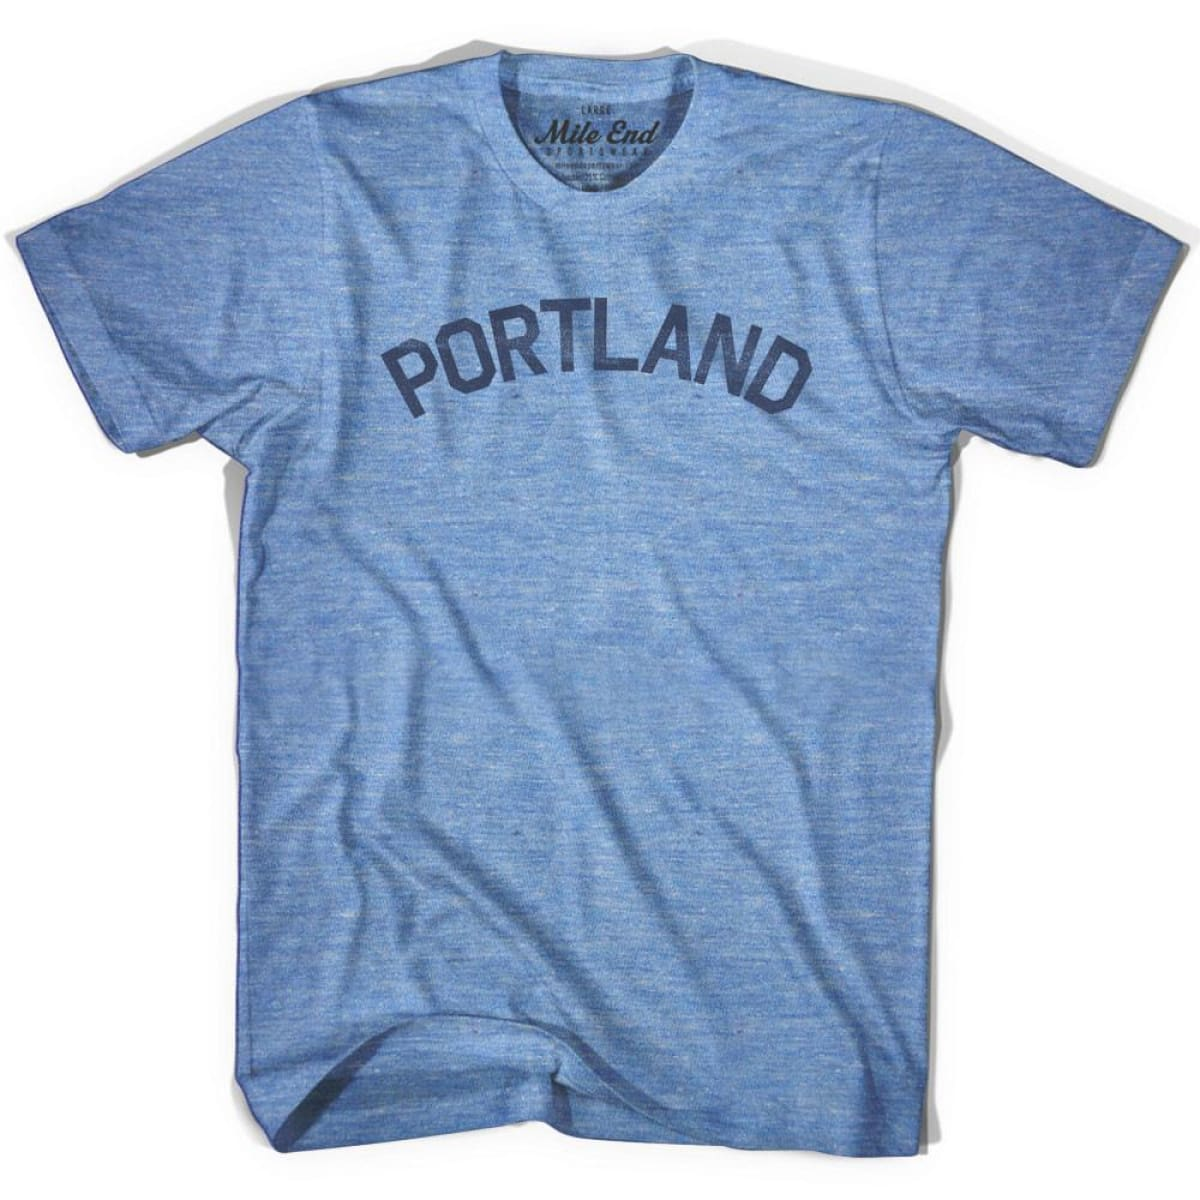 Portland City Vintage T-shirt - Athletic Blue / Adult X-Small - Mile End City